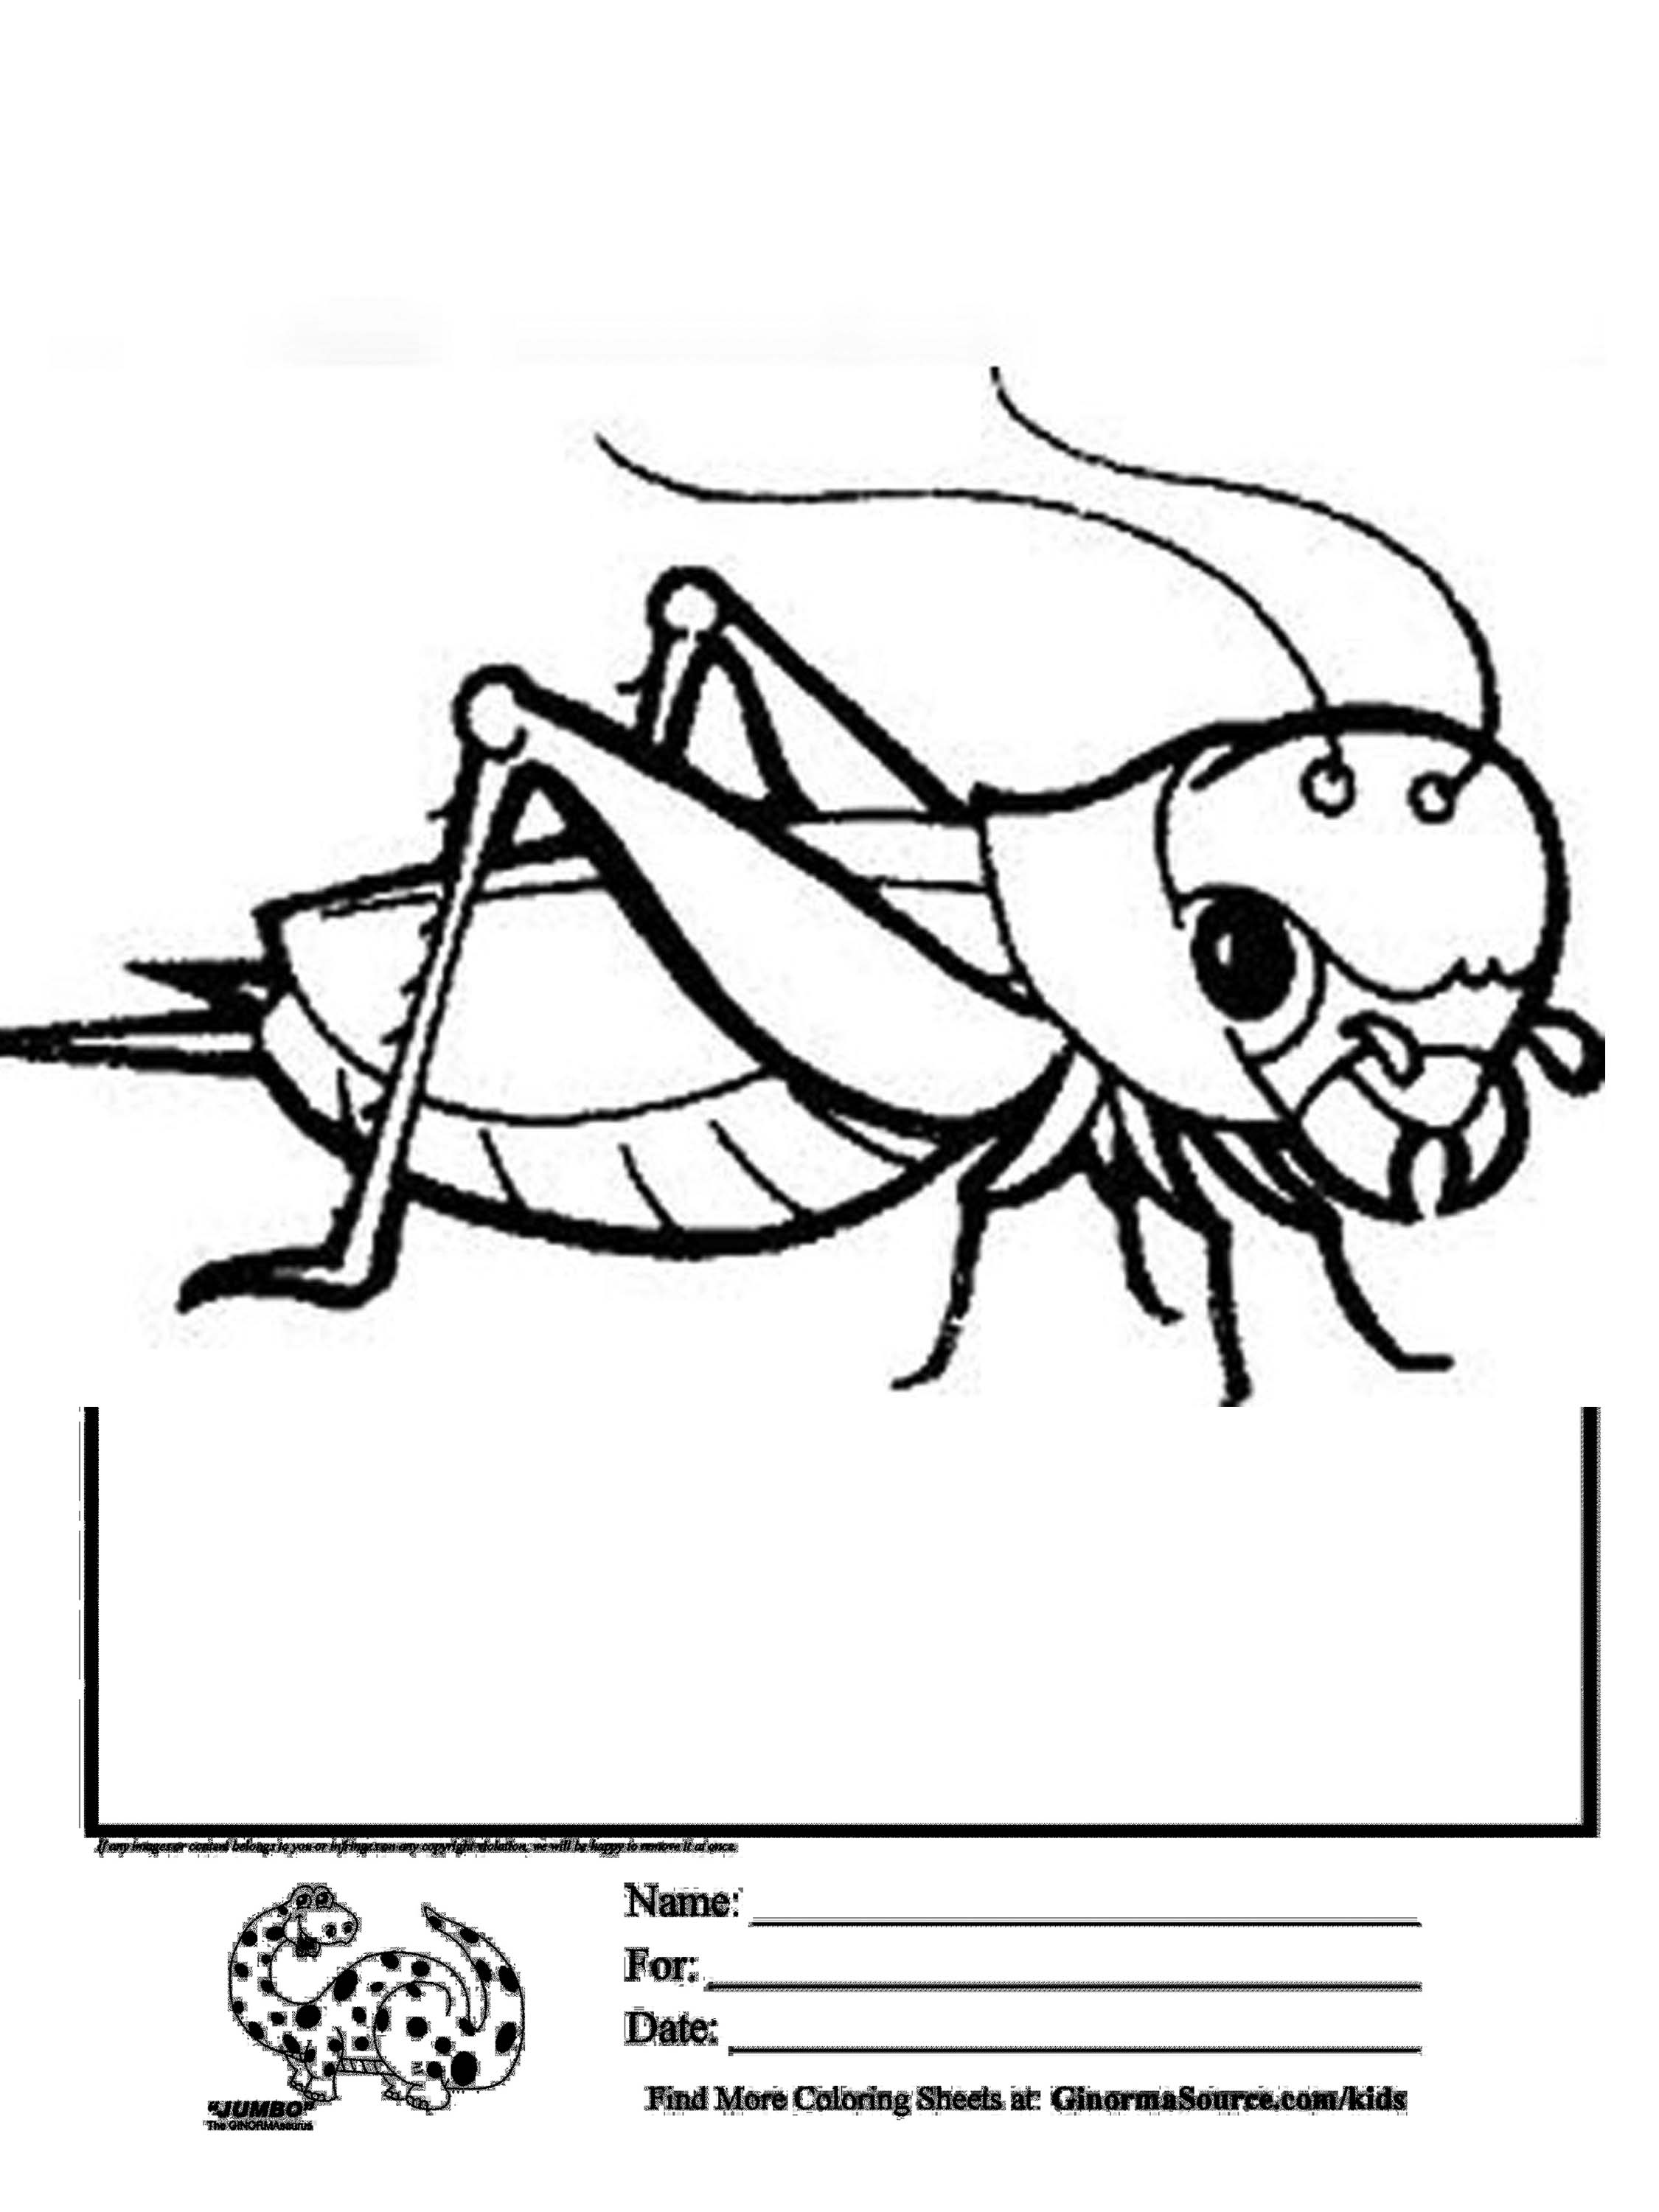 Grasshopper Drawing For Kids at GetDrawings | Free download